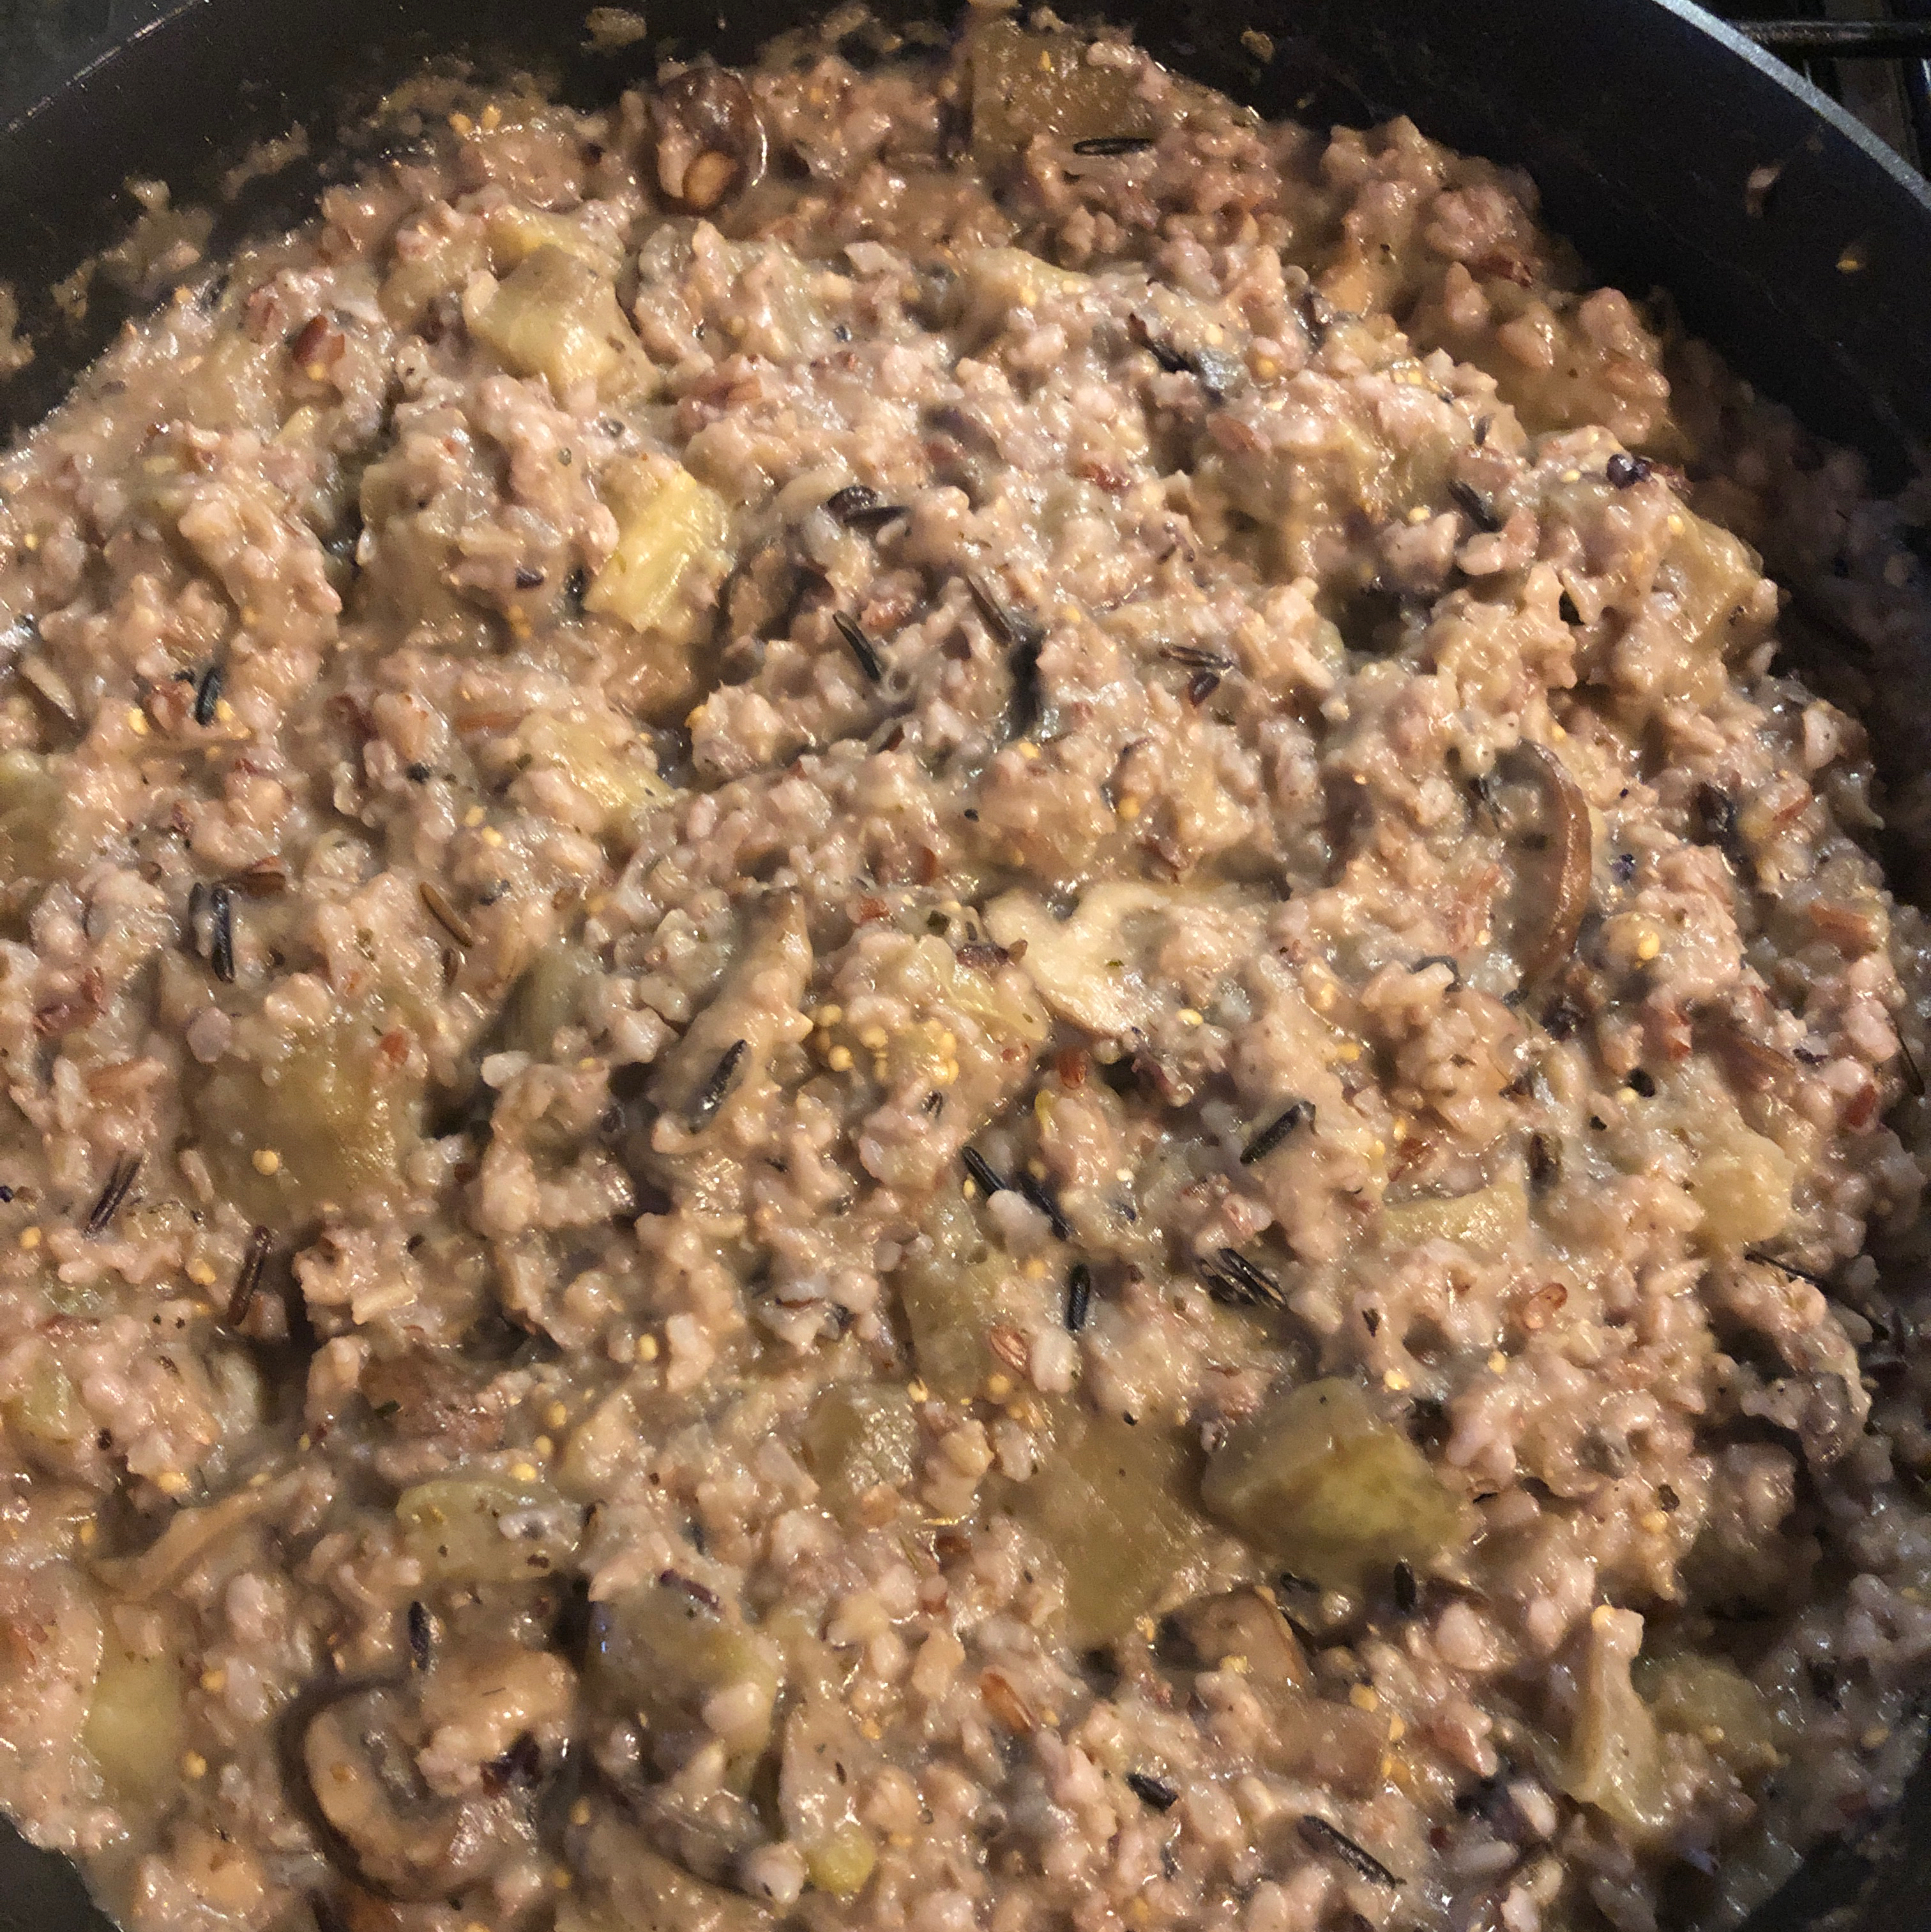 Eggplant and Mushrooms with Wild Rice tgq1